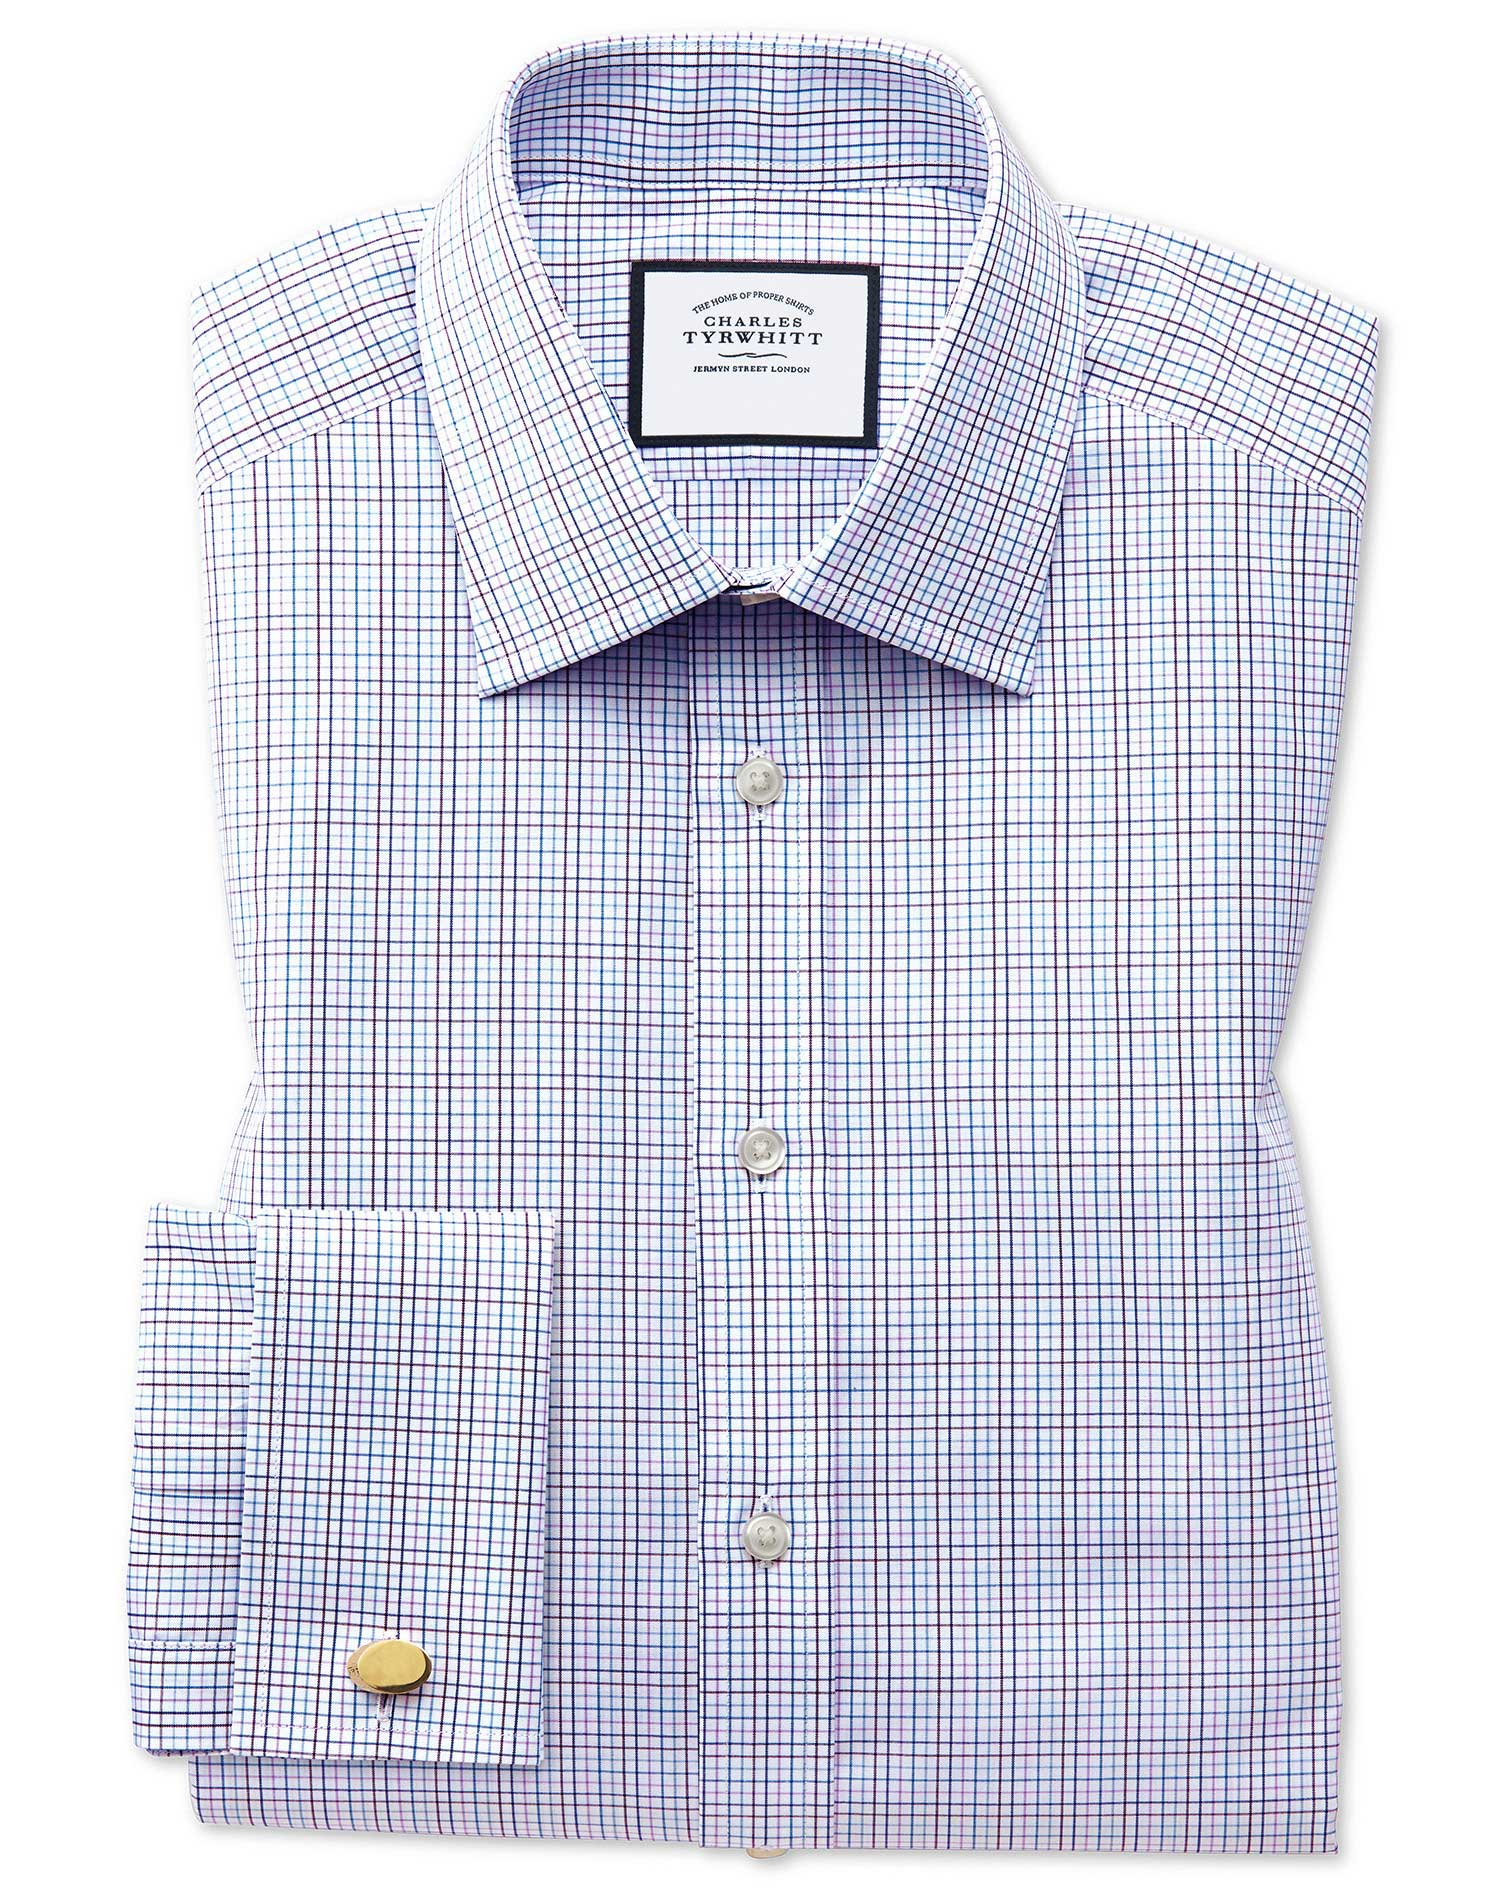 Extra Slim Fit Purple Multi Check Egyptian Cotton Formal Shirt Single Cuff Size 15.5/37 by Charles T